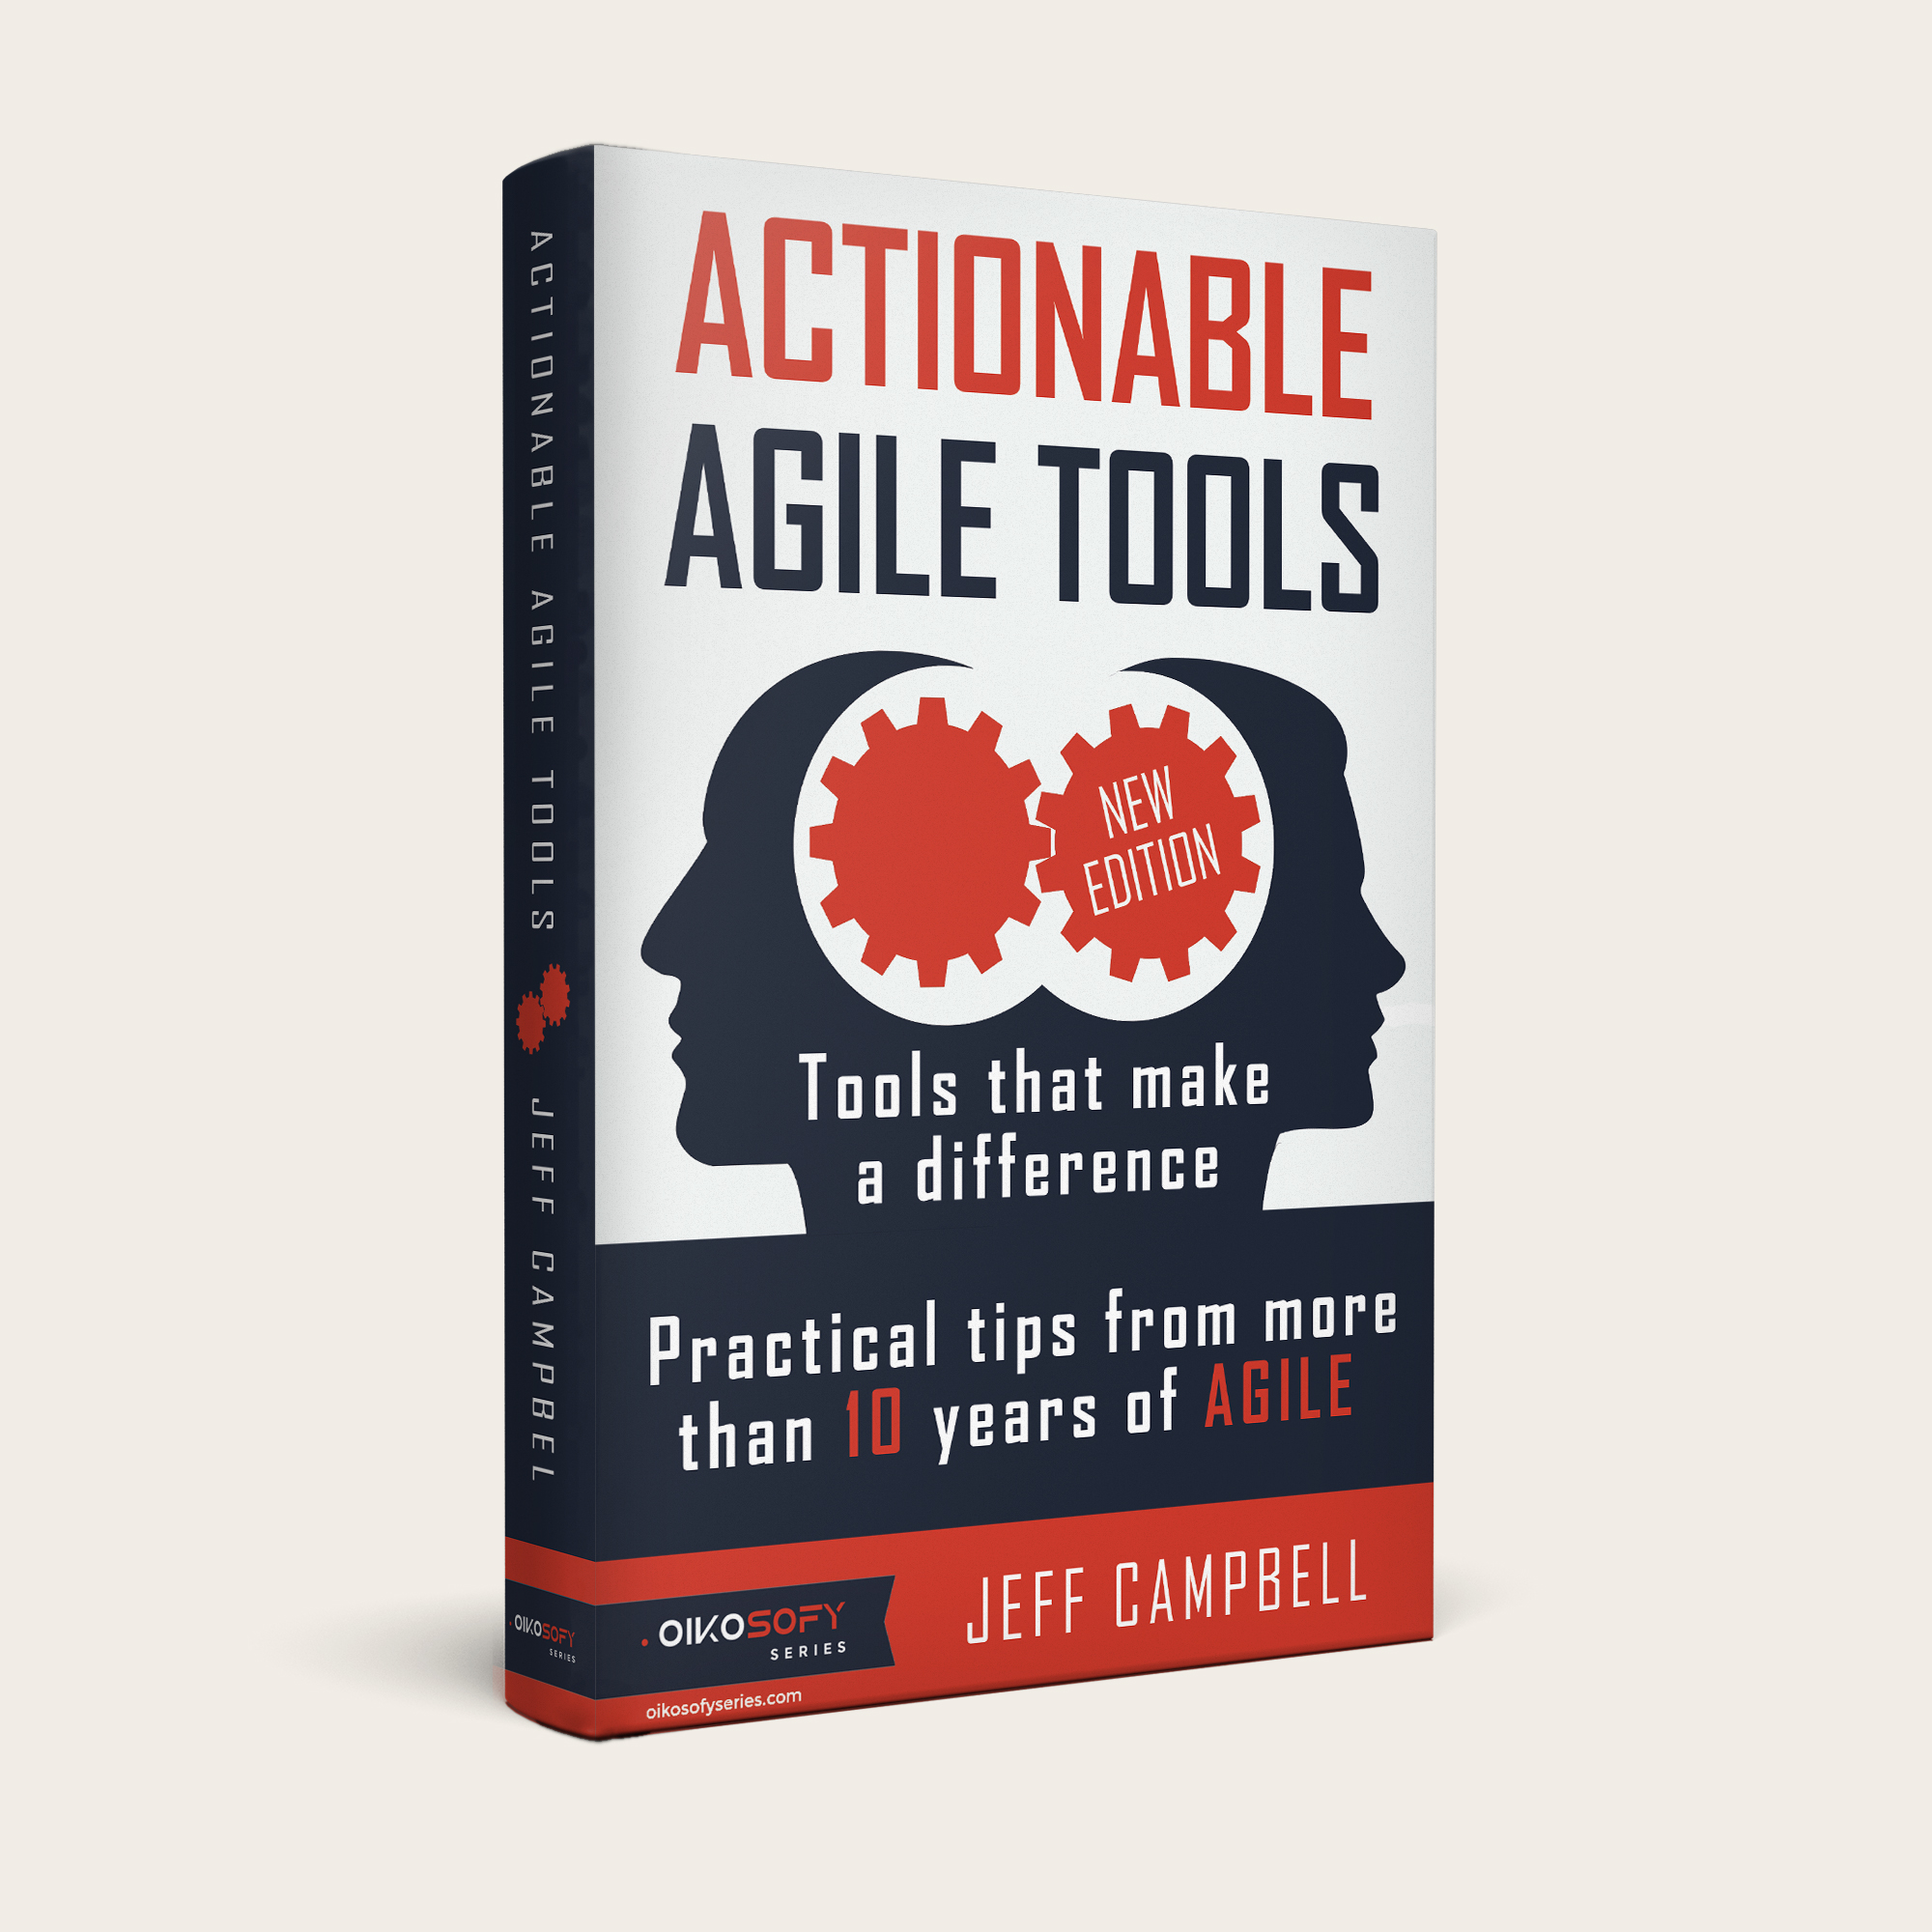 Jeff Campbell Actionable Agile Tools